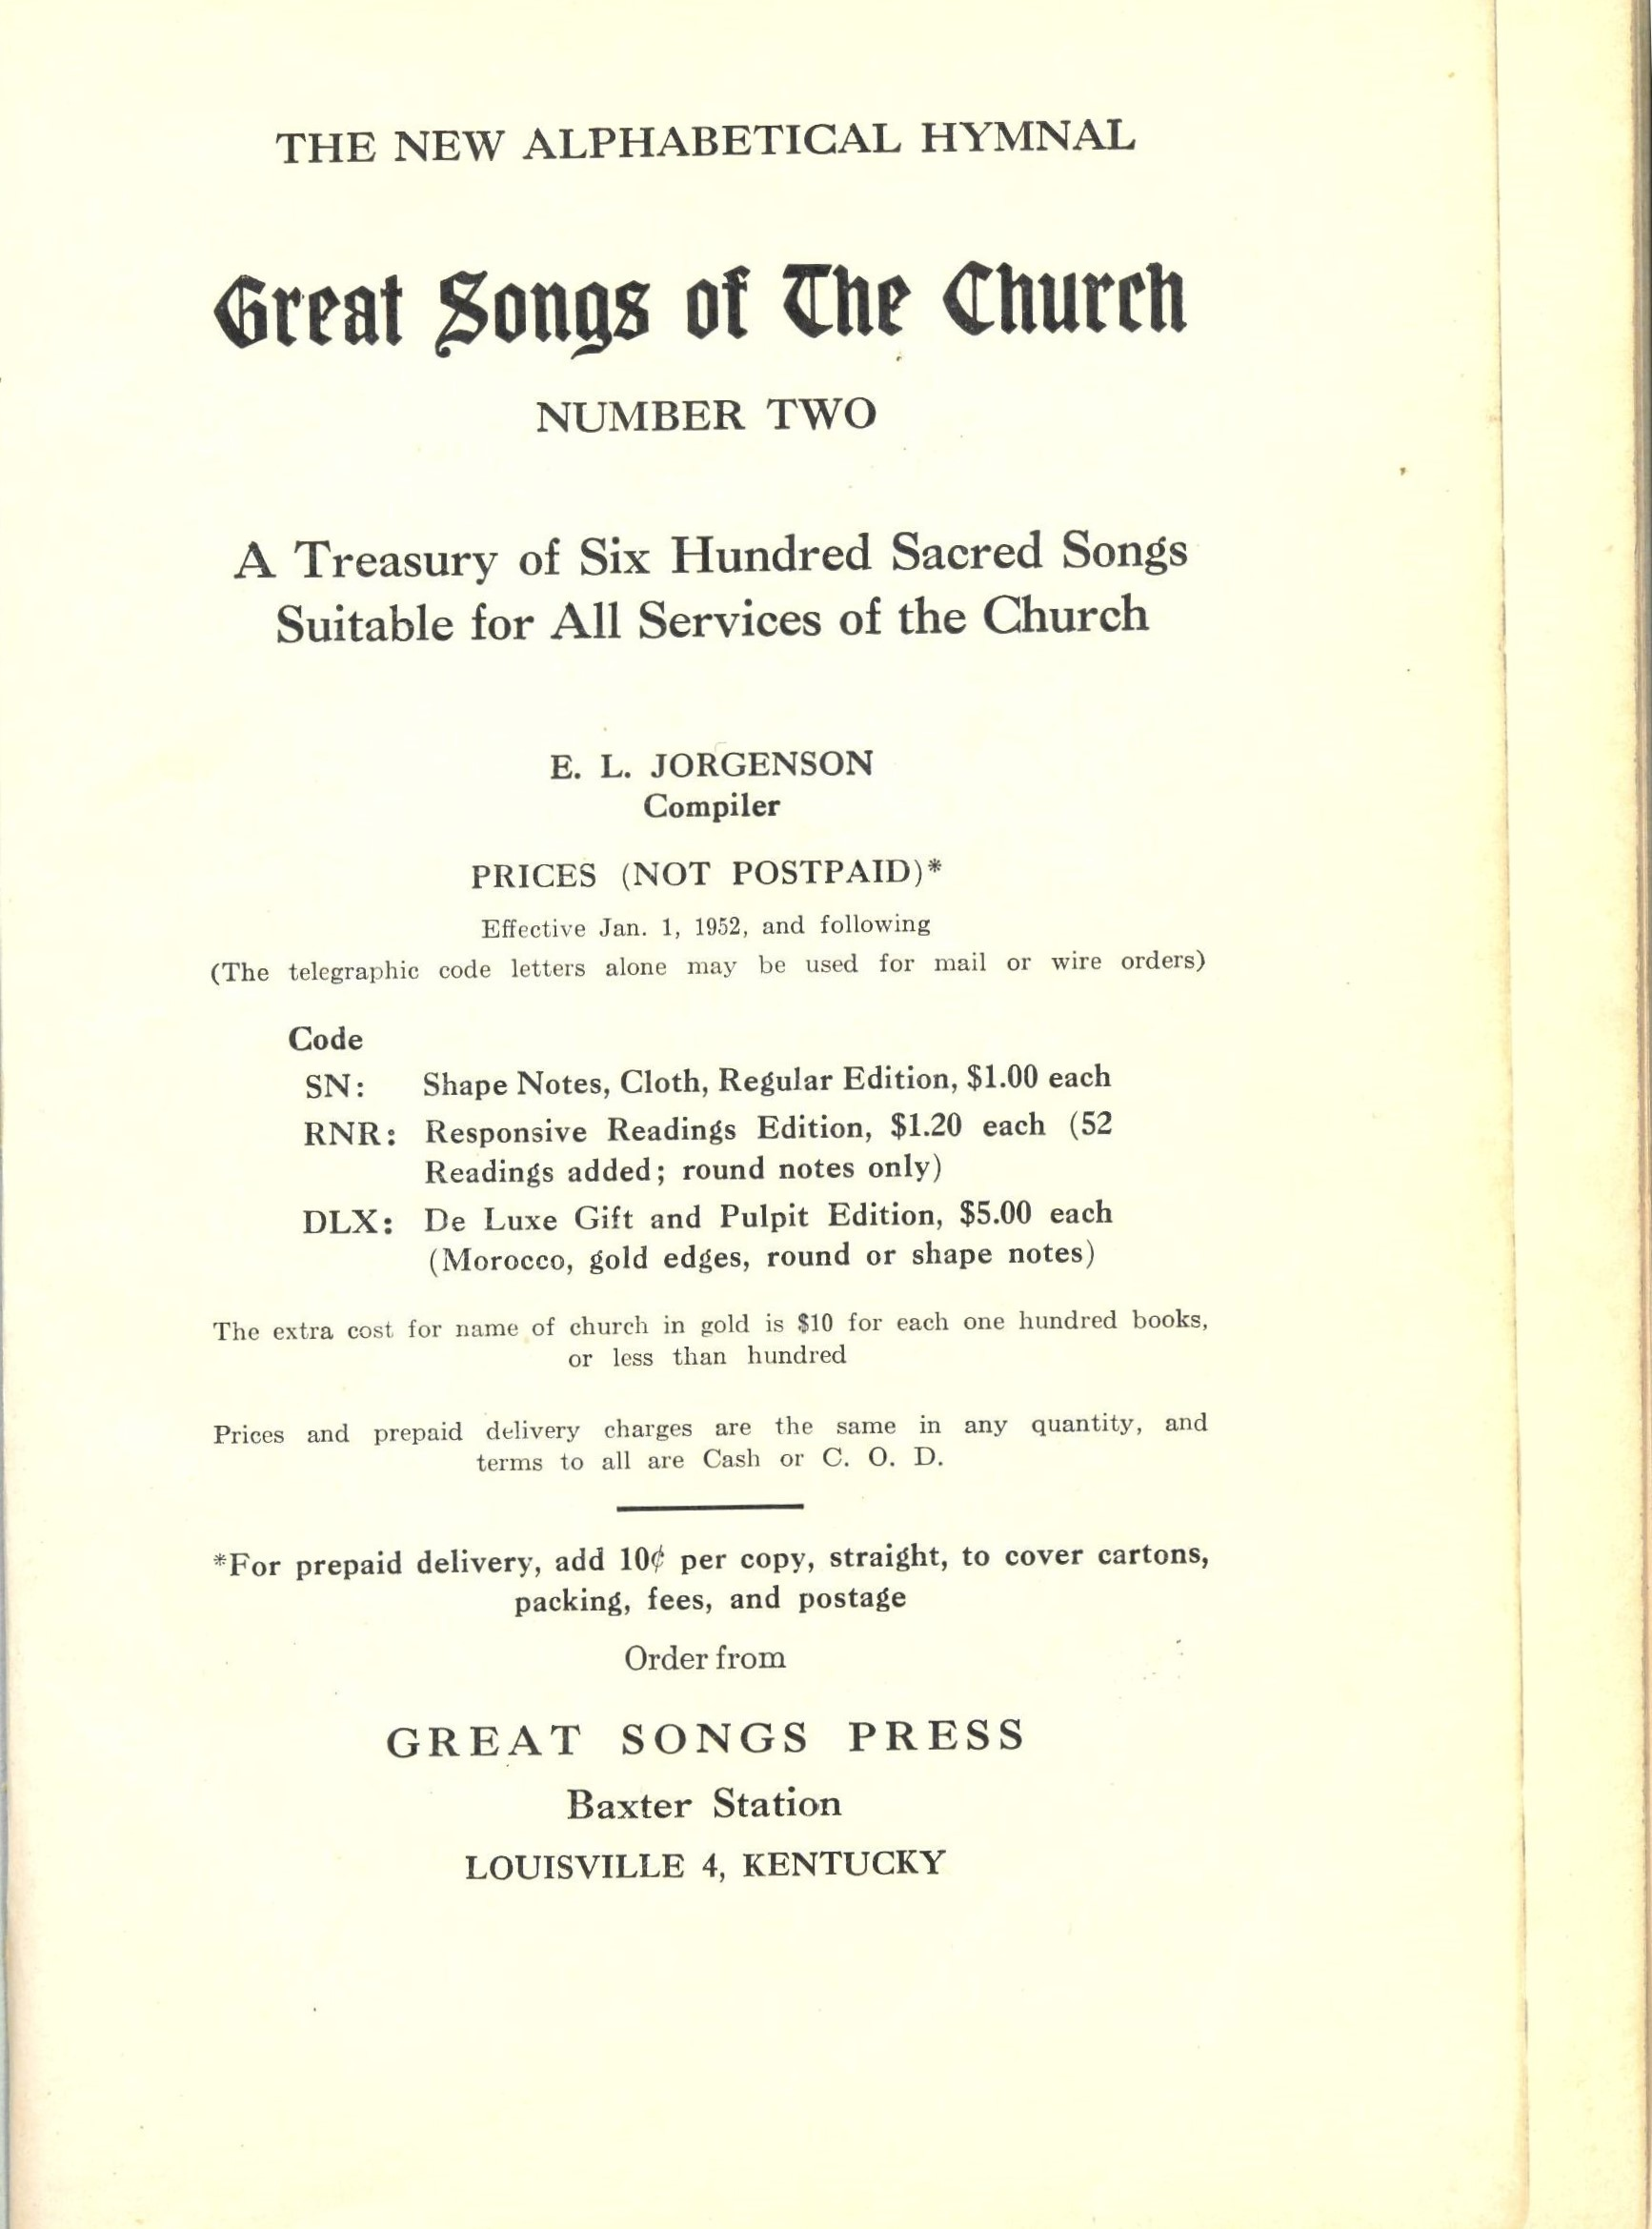 The New Alphabetical Hymnal. Great Songs of the Church Number Two. A Treasury of Six Hundred Sacred Songs Suitable for All Services of the Church. E. L. Jorgenson, Compiler. Great Songs Press: Louisville, 1952. Title page.